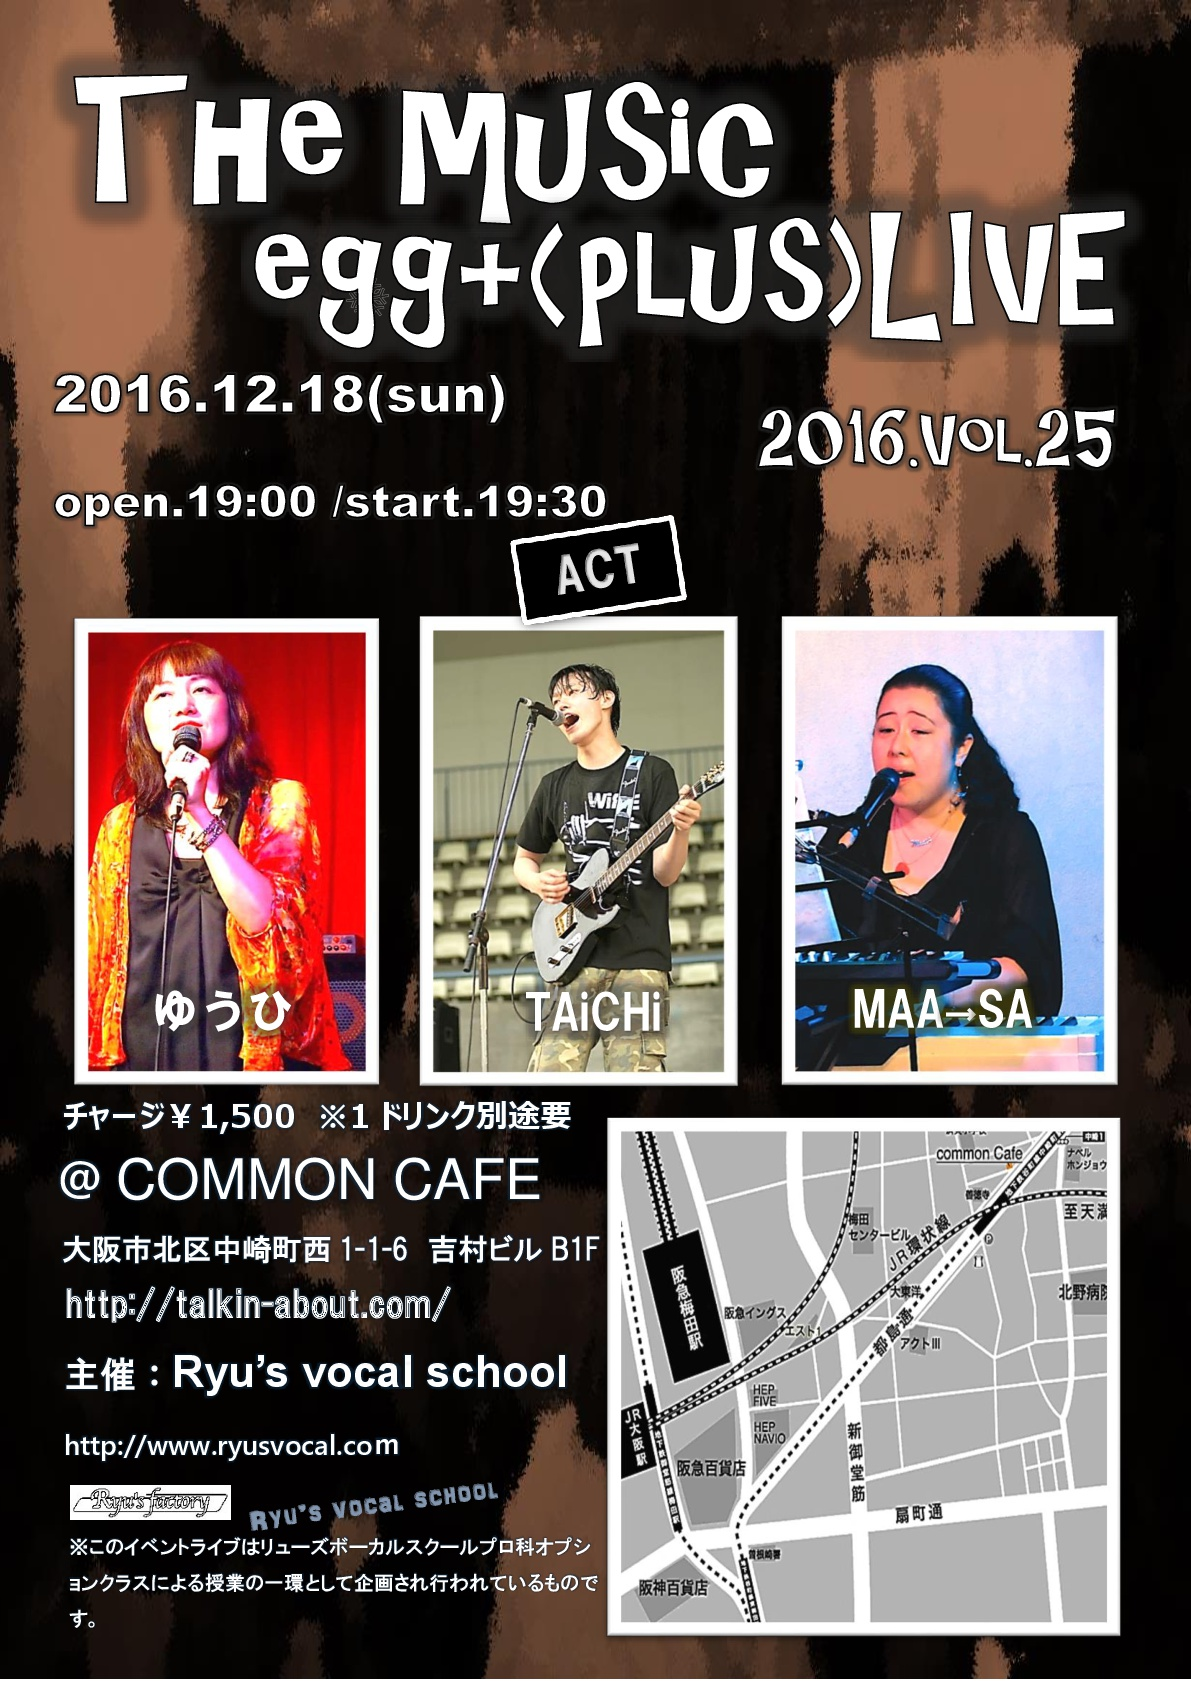 Ryu'sイベント The music egg+ vol.25